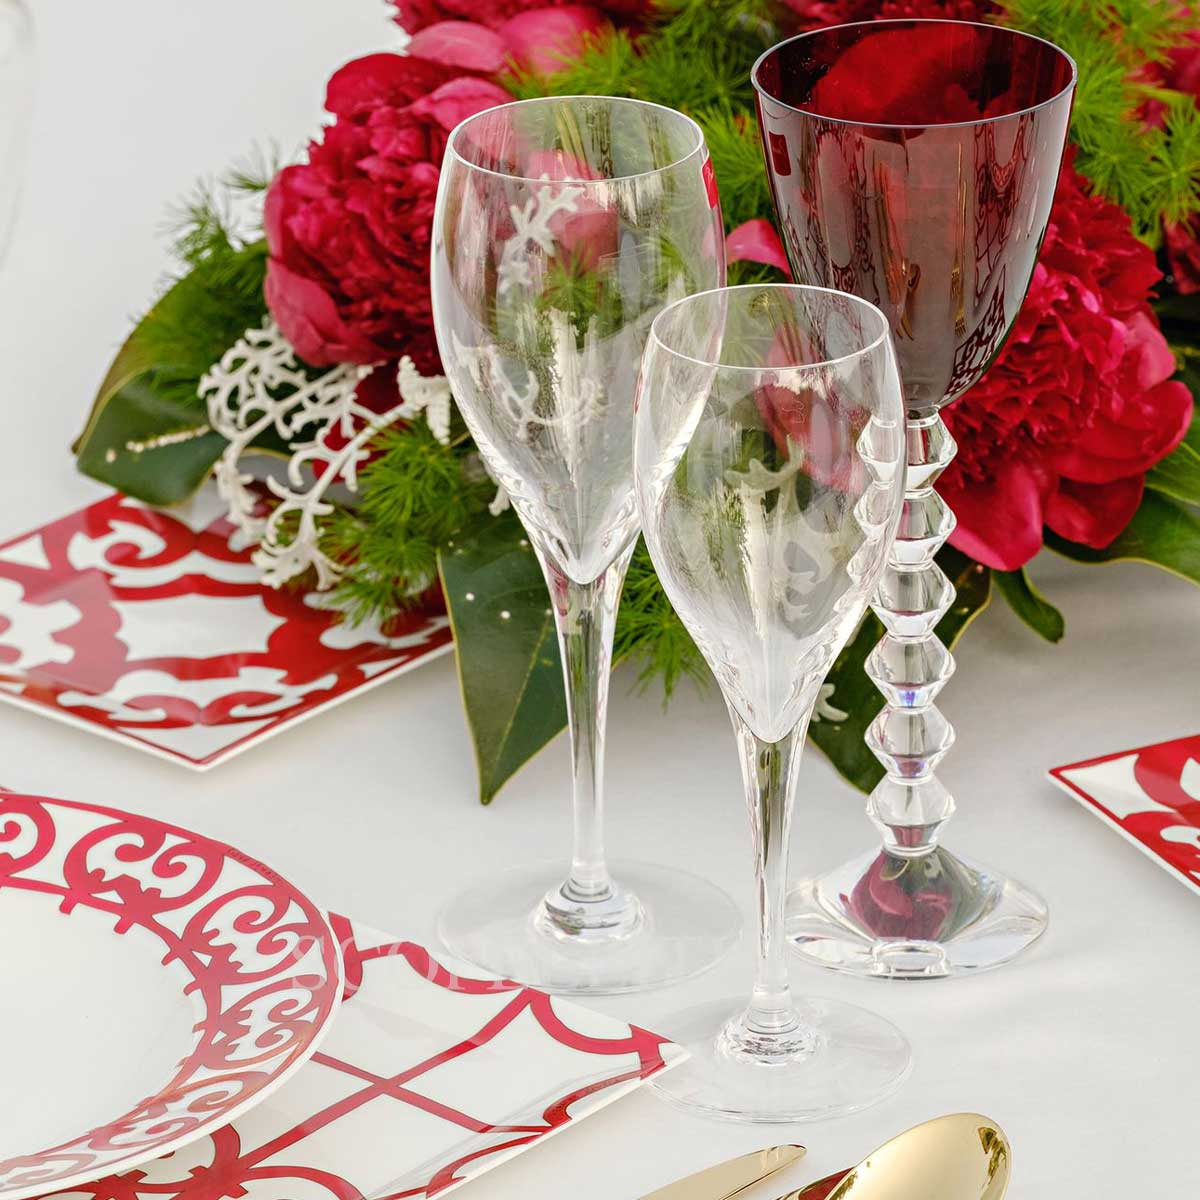 hermes and baccarat table setting